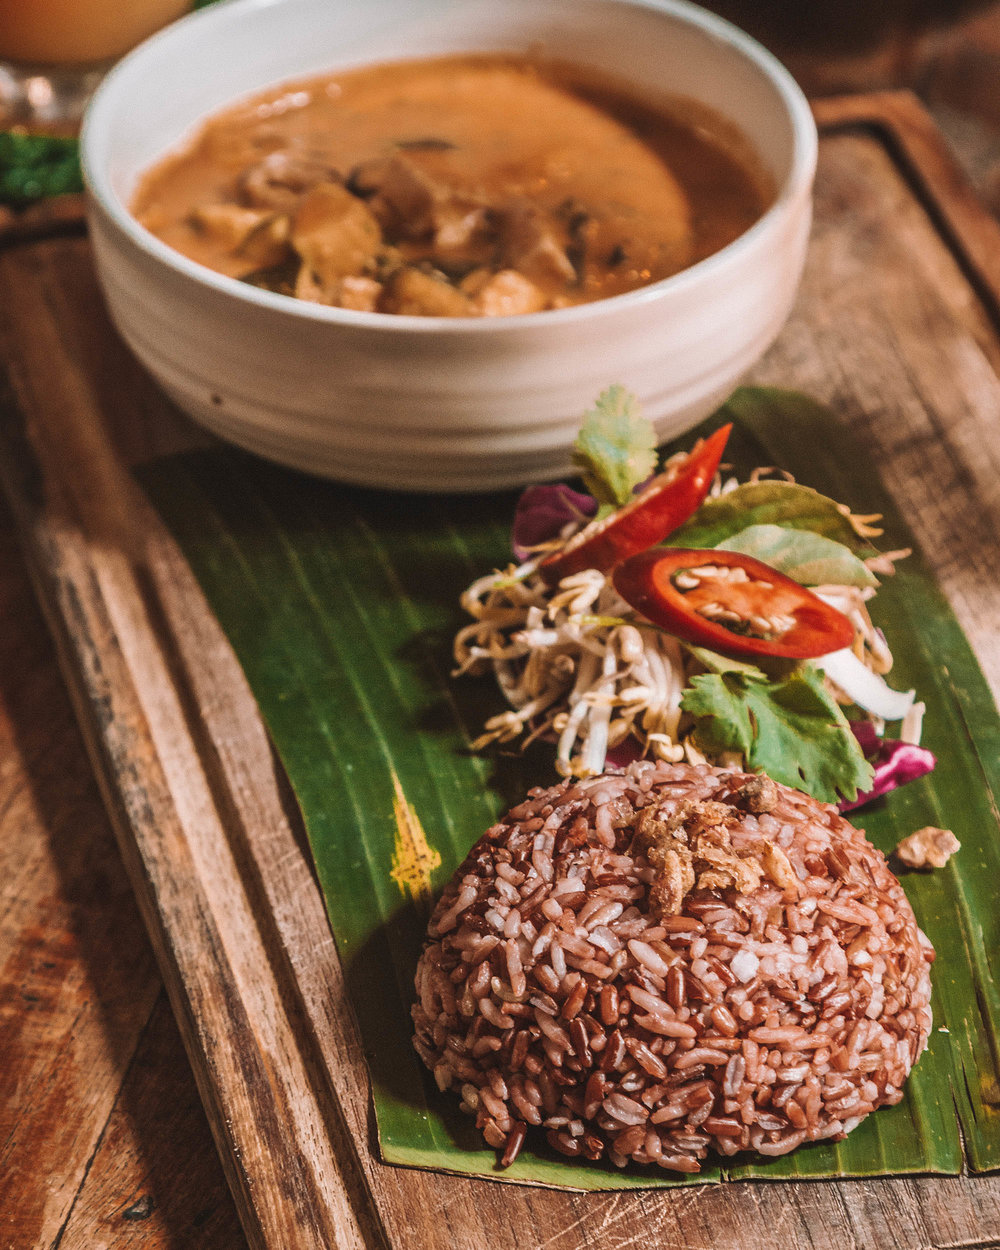 my warung traditional indonesian food canggu bali vegan options vegetarian delicious affordable prices